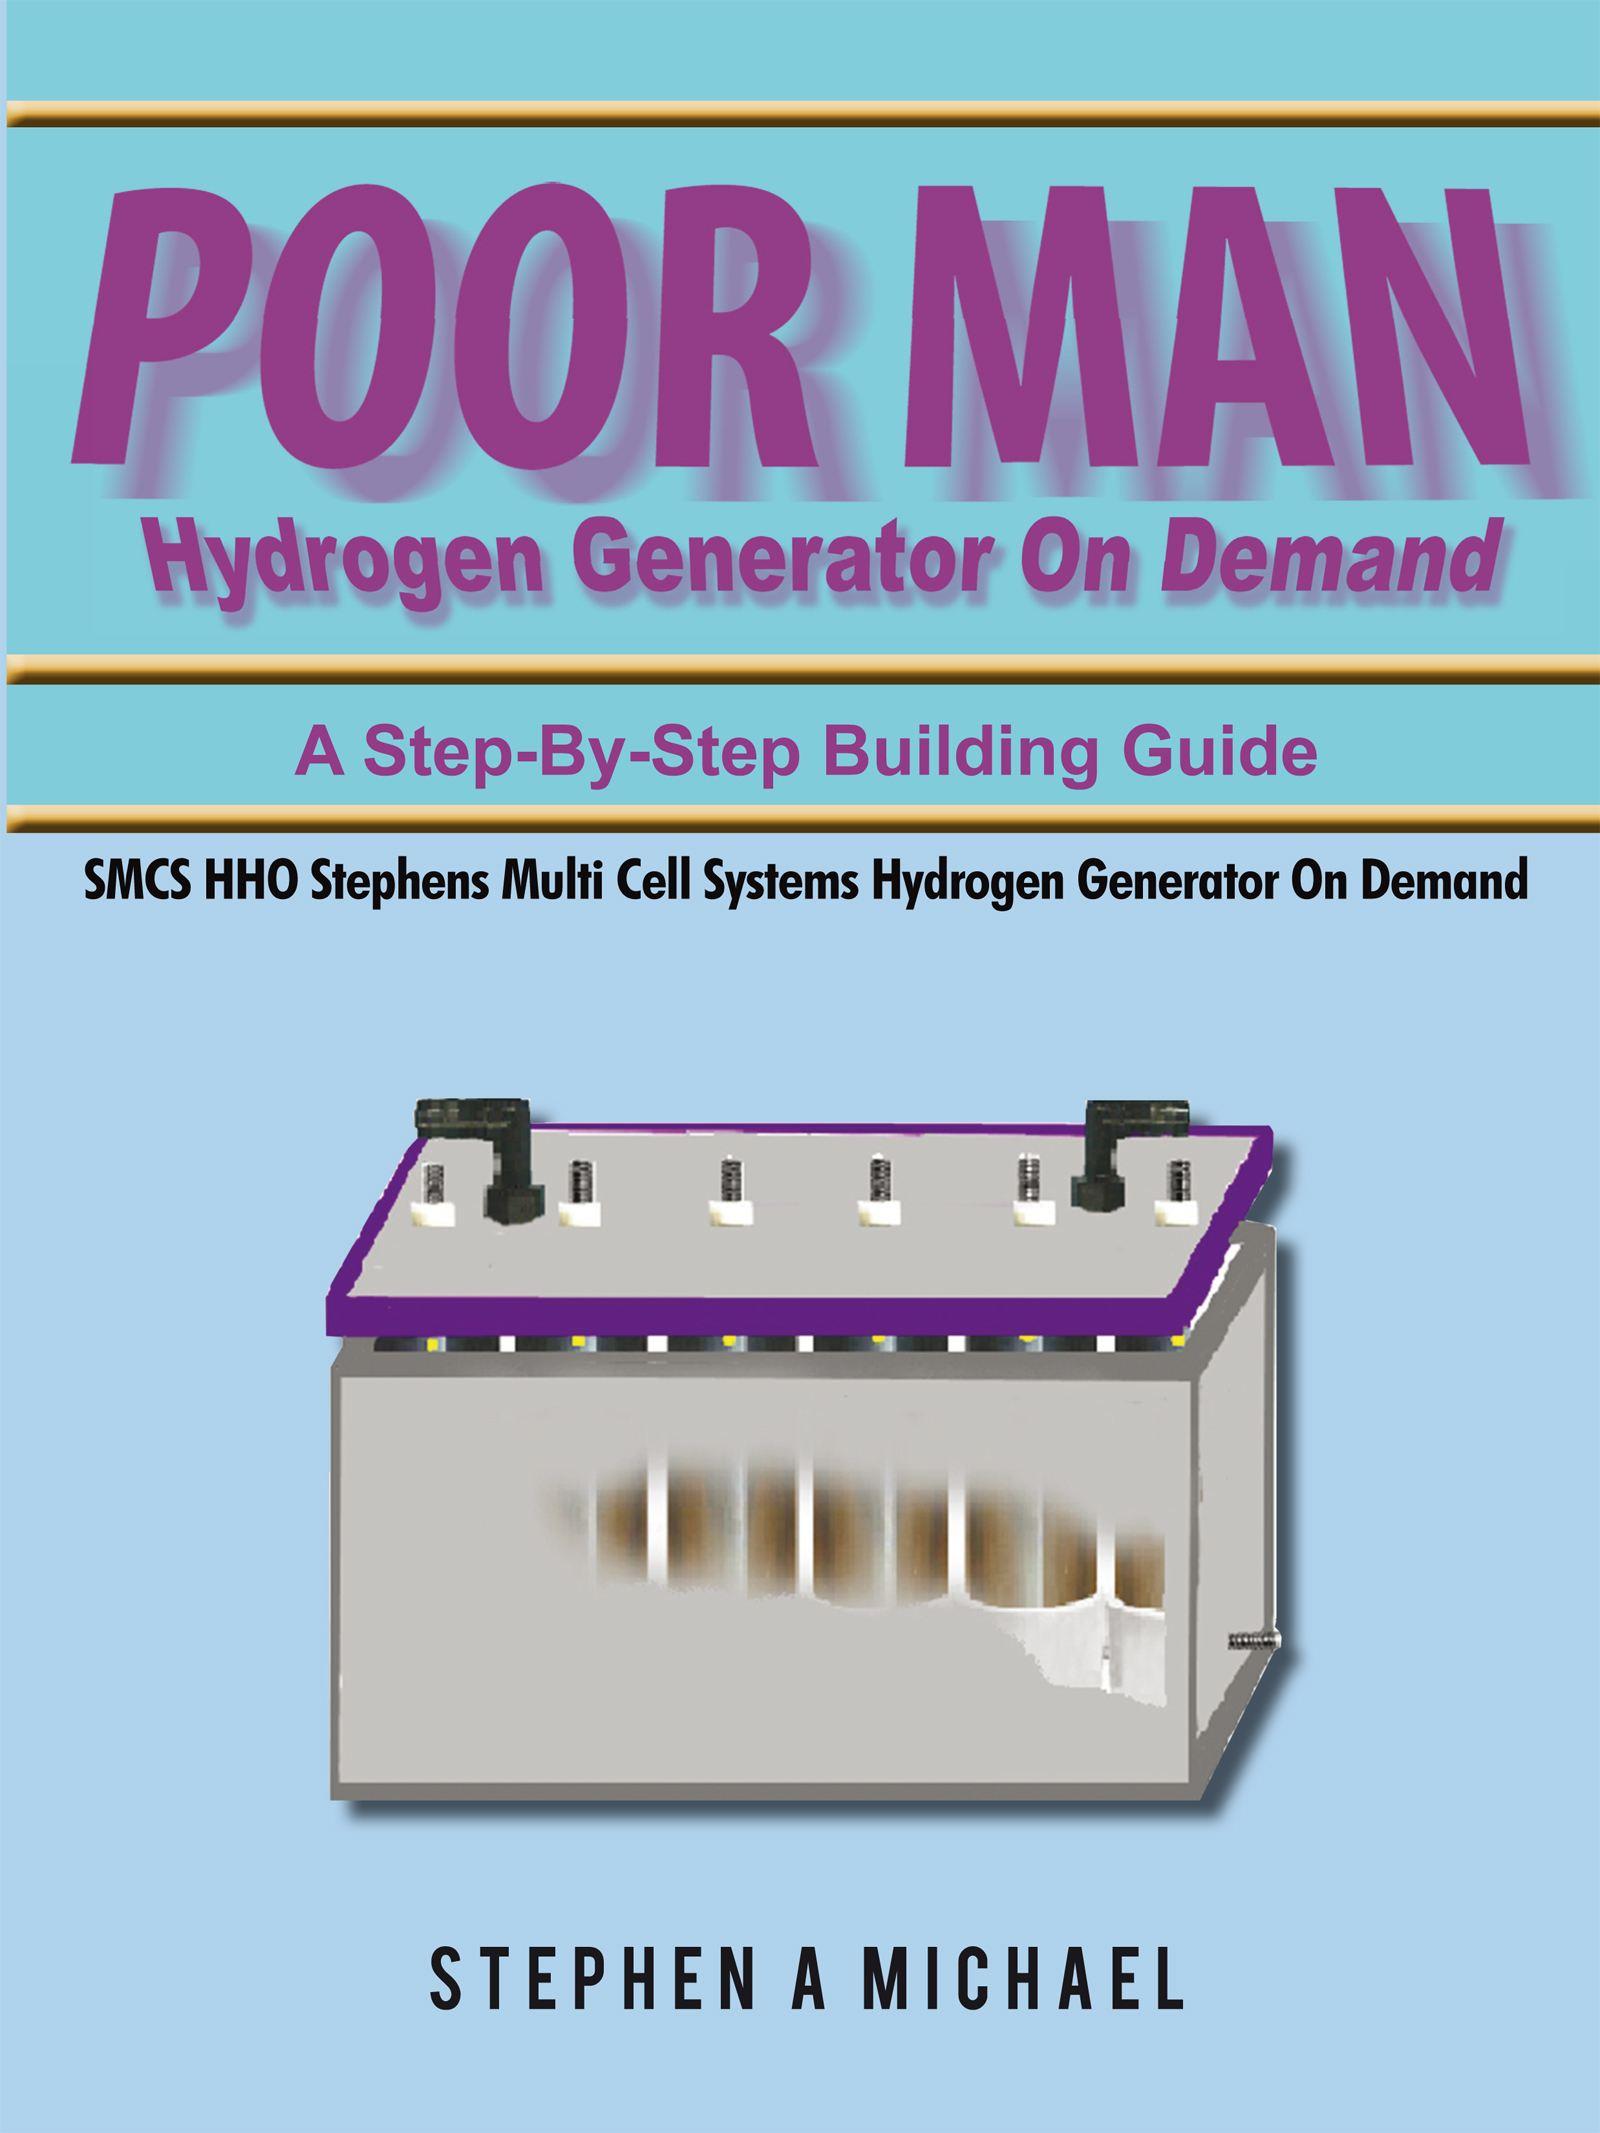 Poor Man Hydrogen Generator On Demand